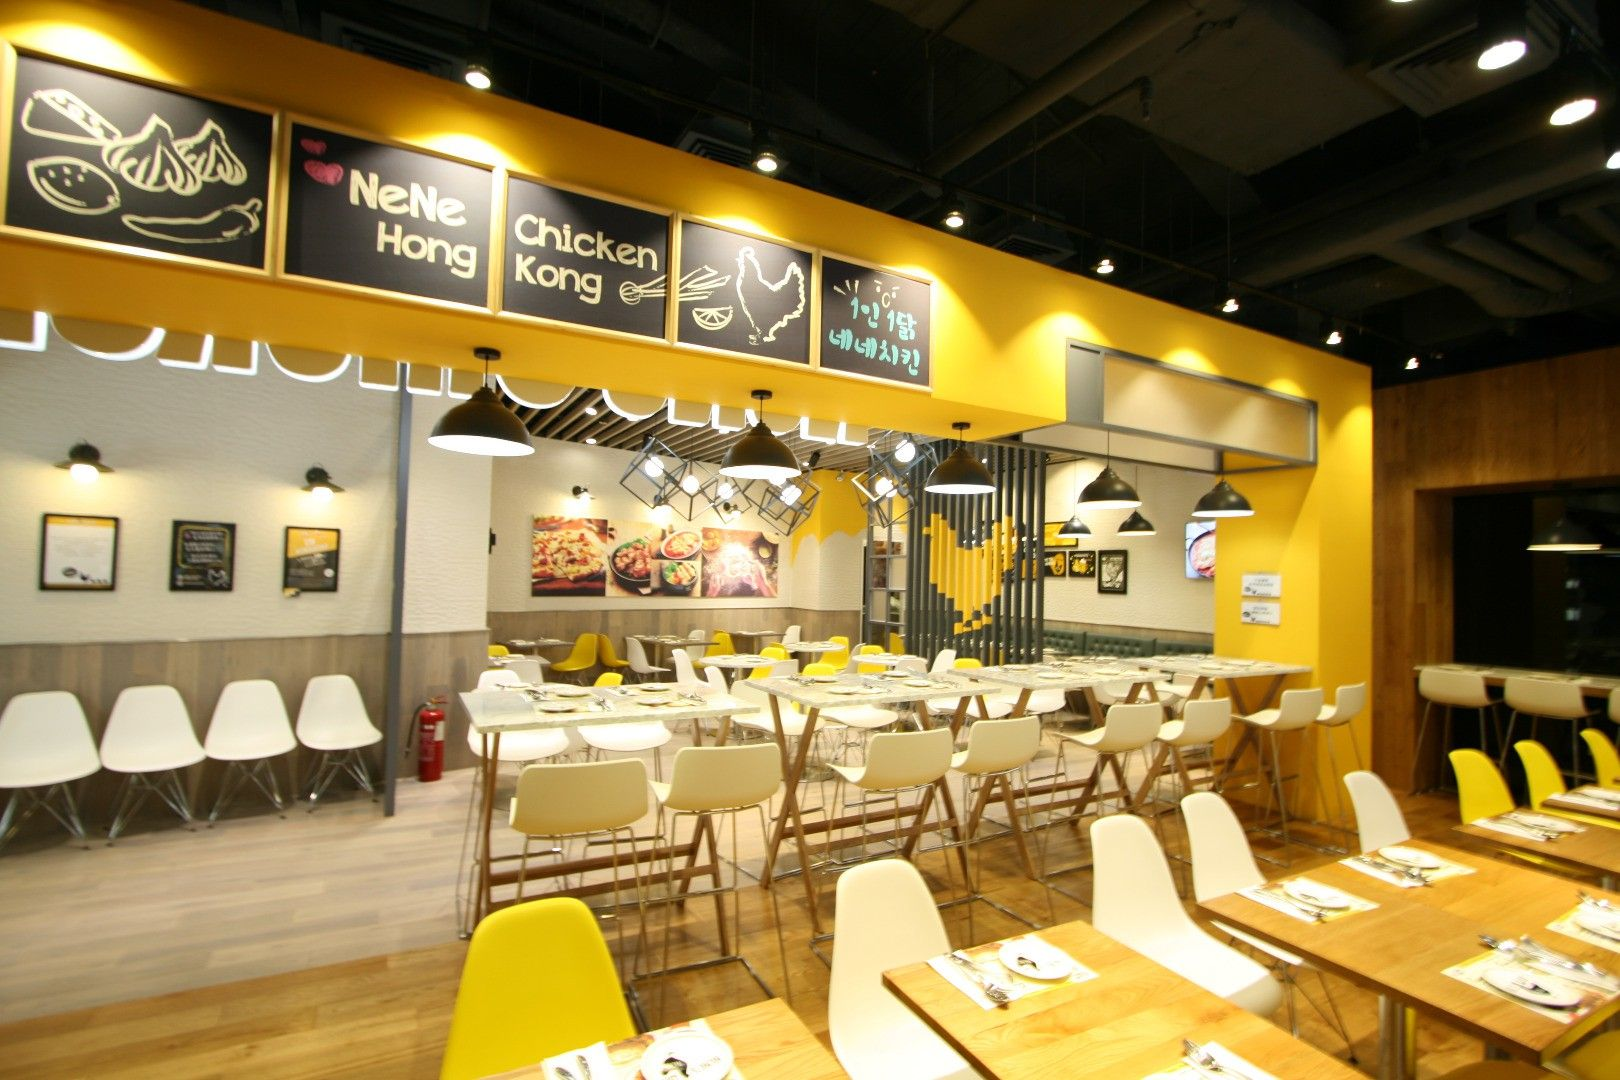 Canteen design restaurant cafe design inspiration find the best one person design firm freelance interior designers expertise in small space design at